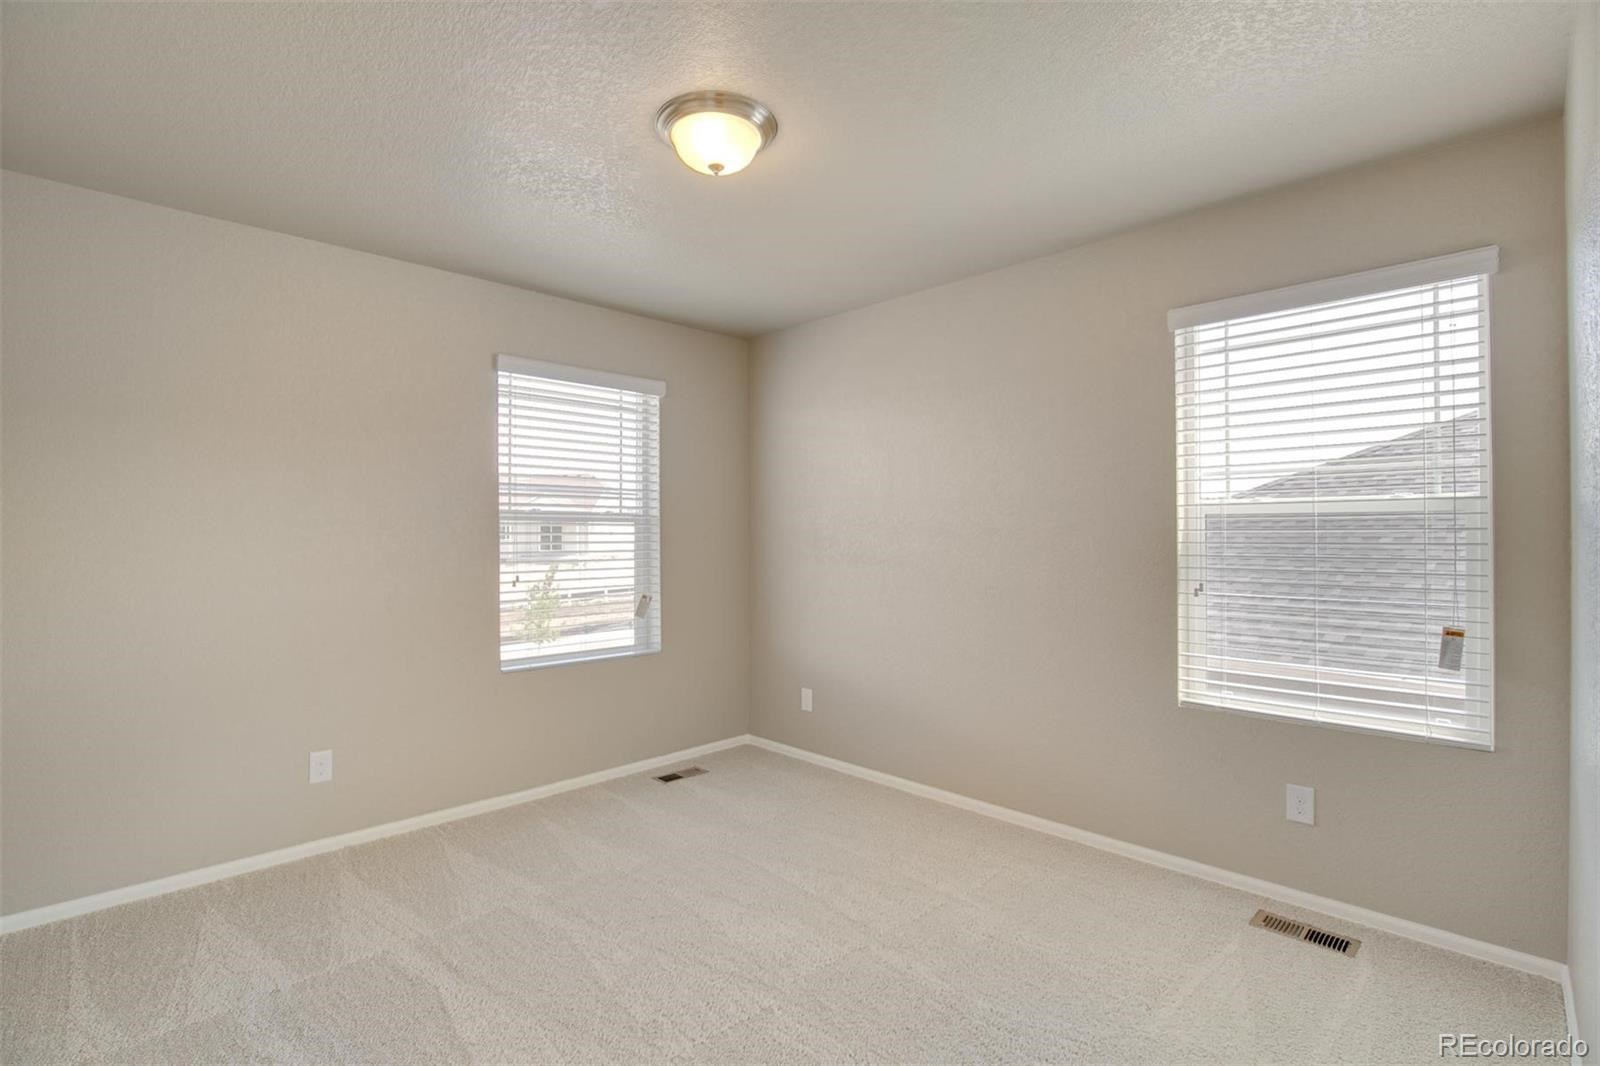 MLS# 4867430 - 23 - 915 Camberly Drive, Windsor, CO 80550